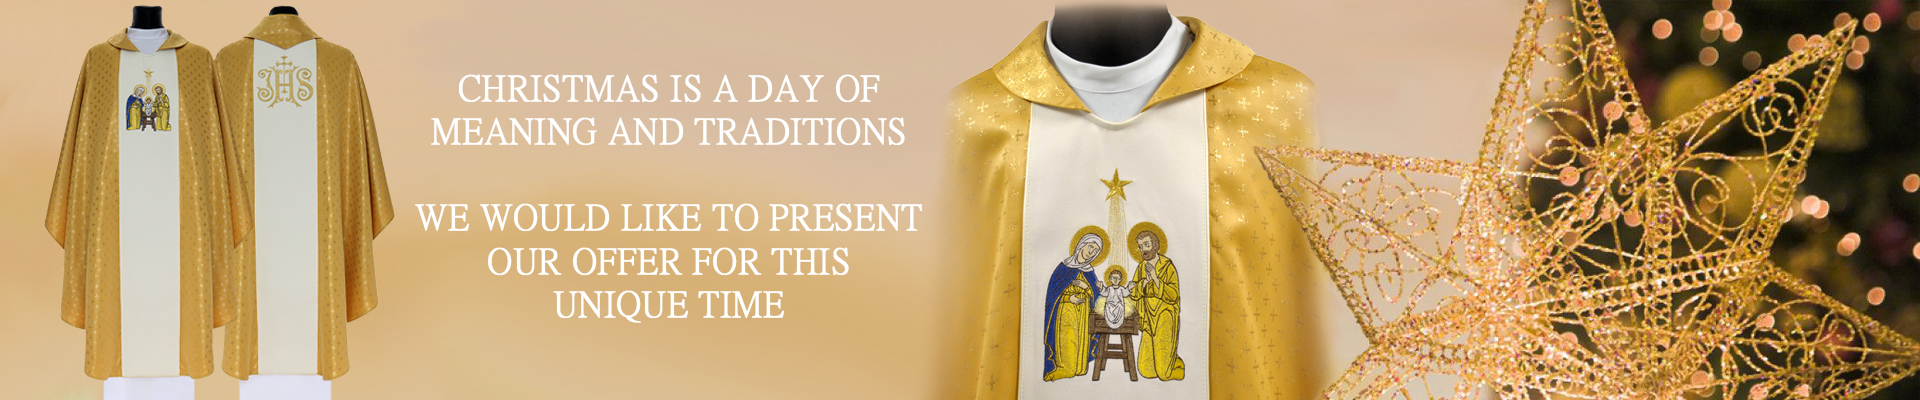 Gold chasuble for christmas